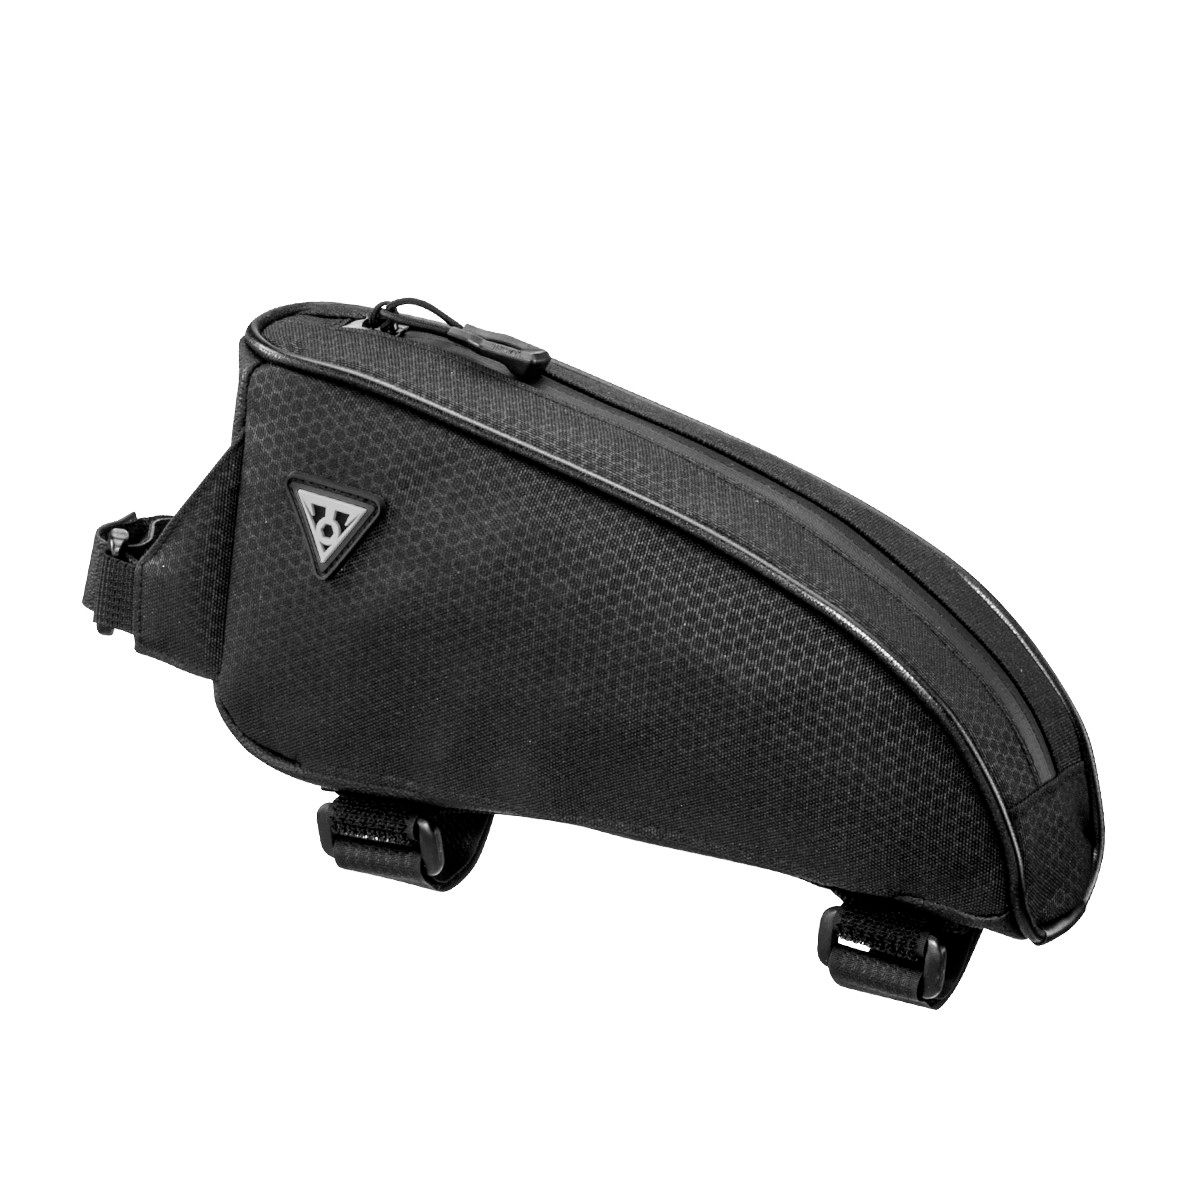 TOPLOADER bicycle frame bag